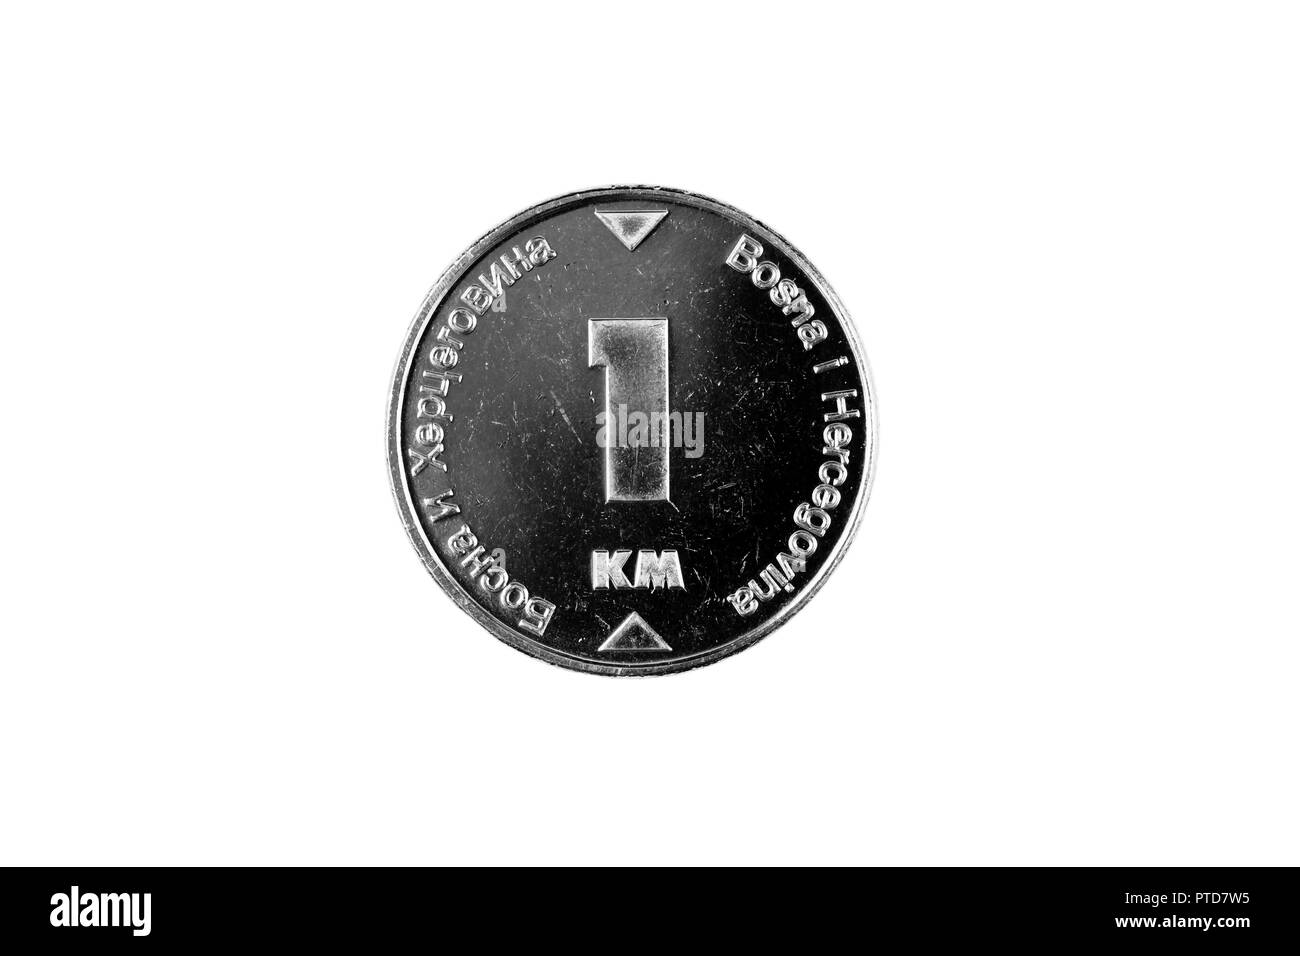 A macro image of a Bosnian 1 convertible mark coin isolated on a white background - Stock Image